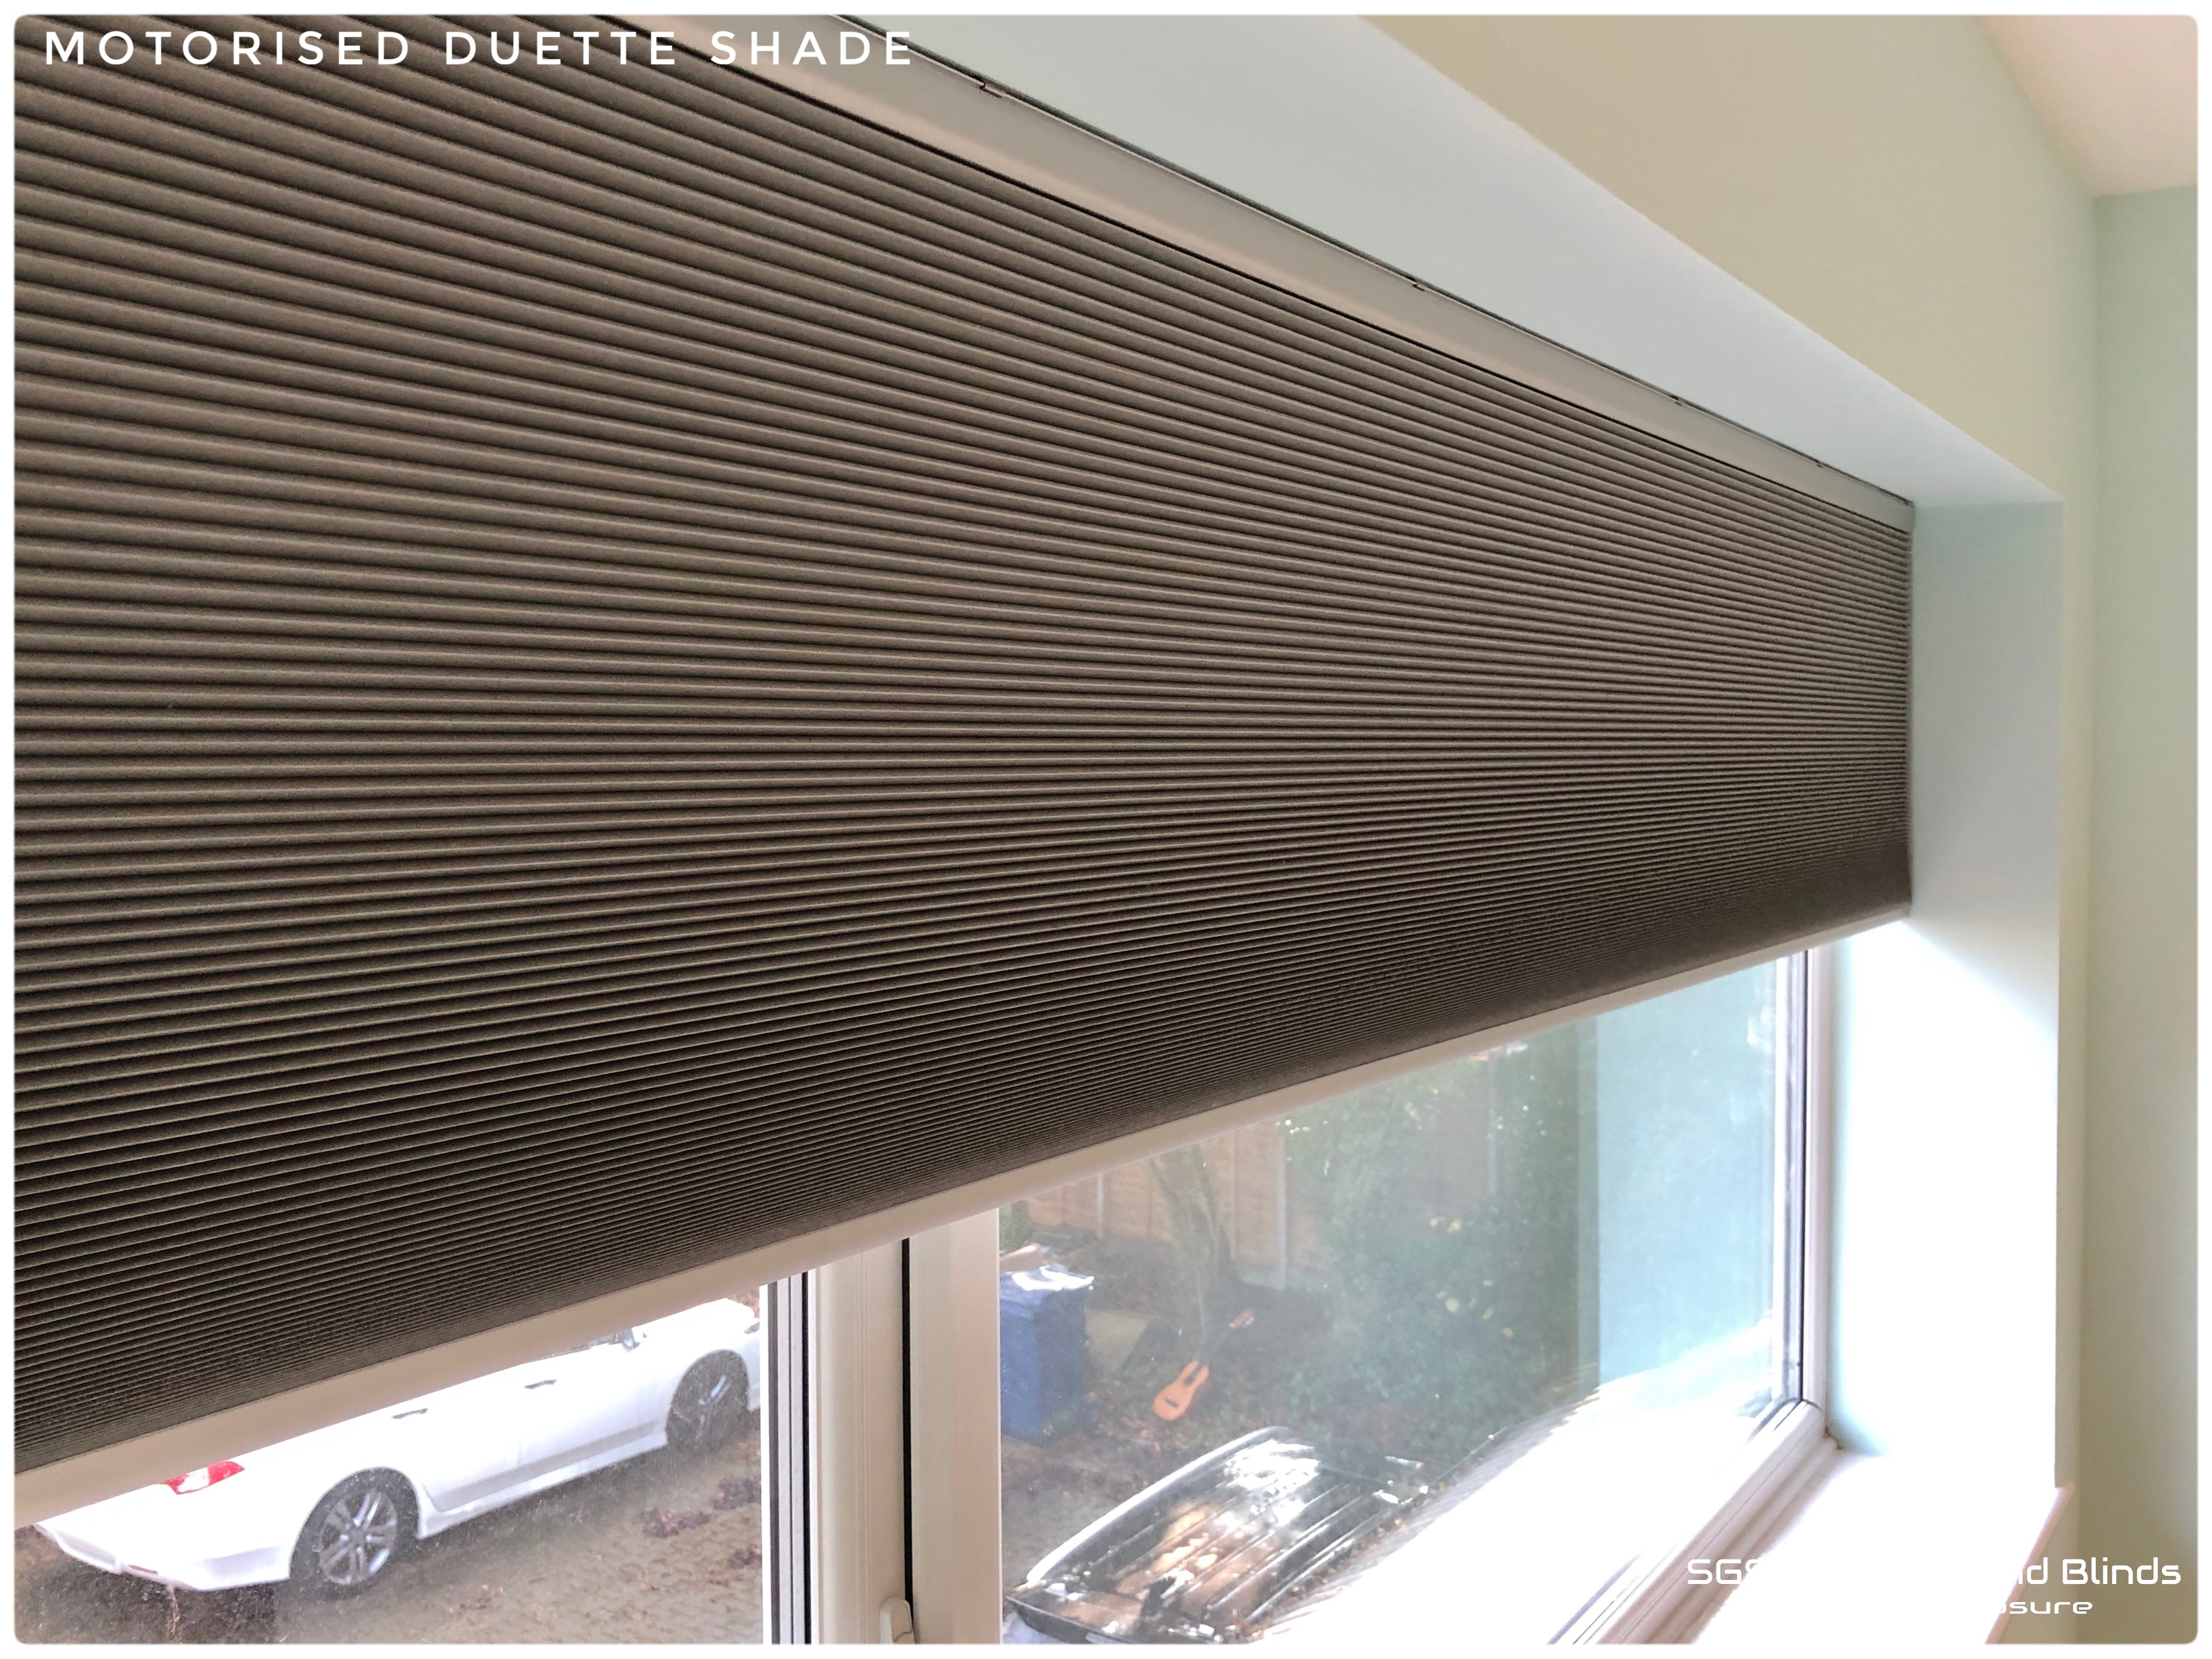 Motorised Duette Shade Sgs Shutters And Blinds